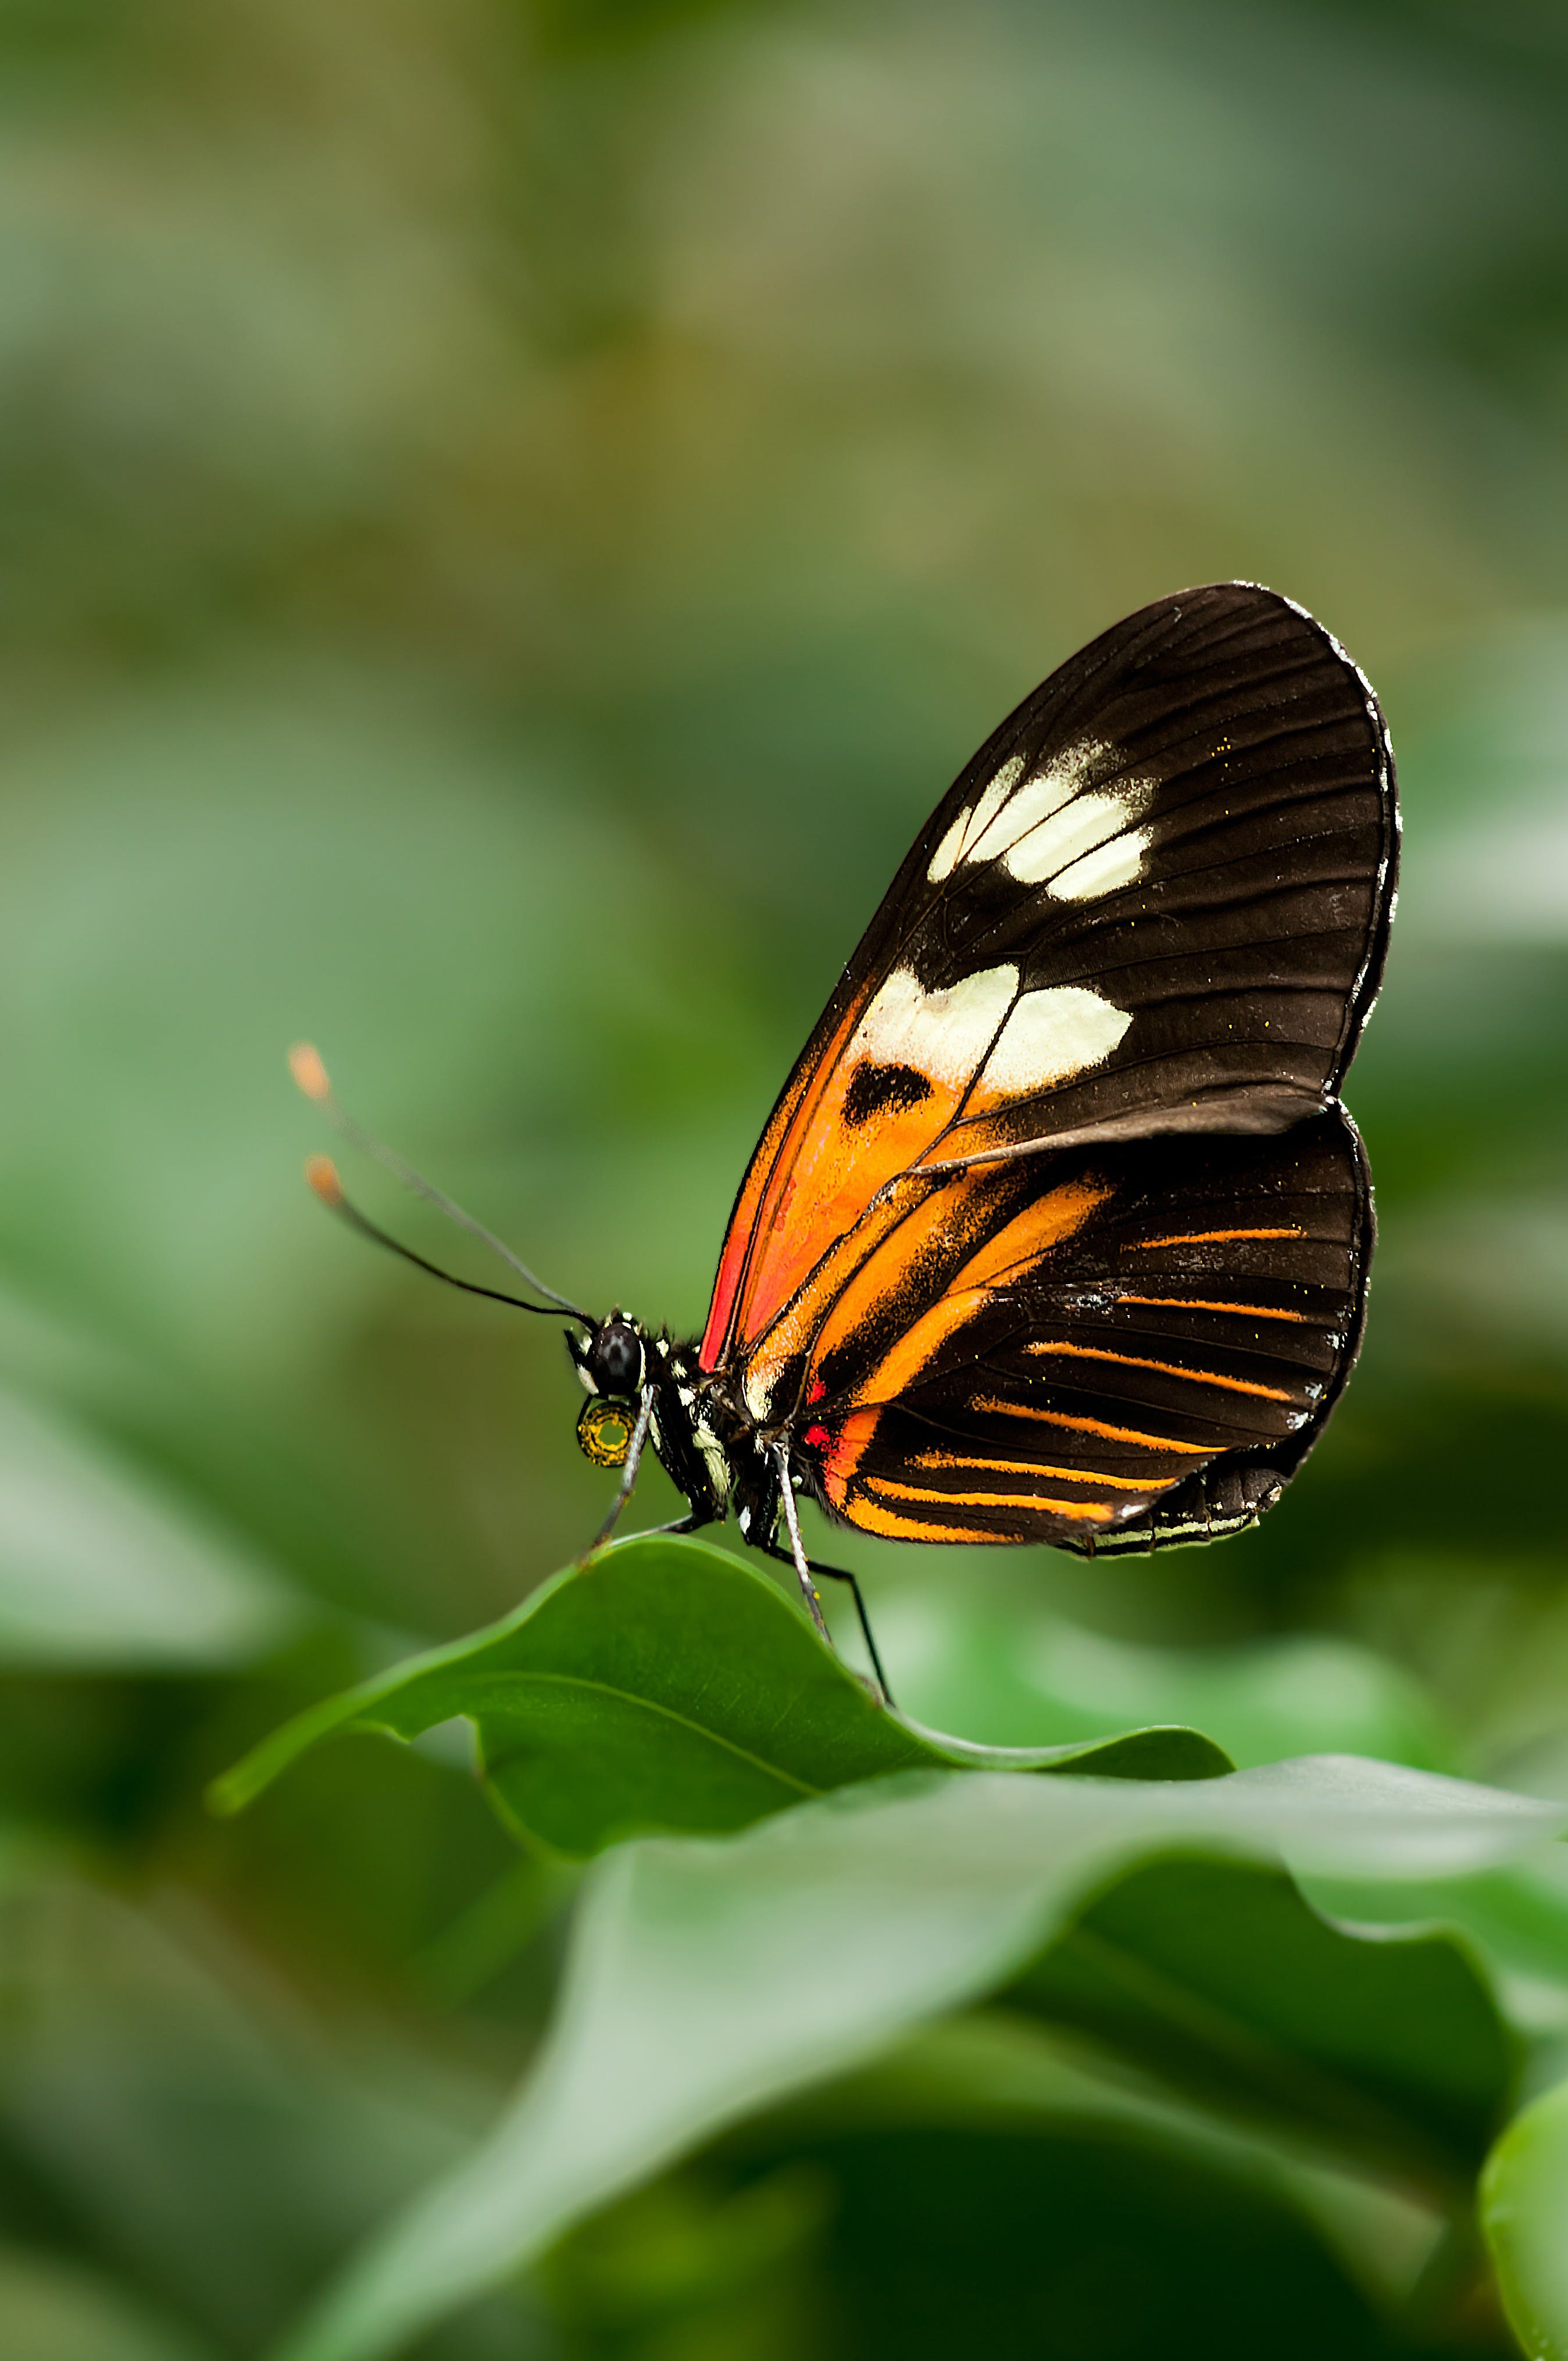 Orange White and Black Butterfly on Green Leaf